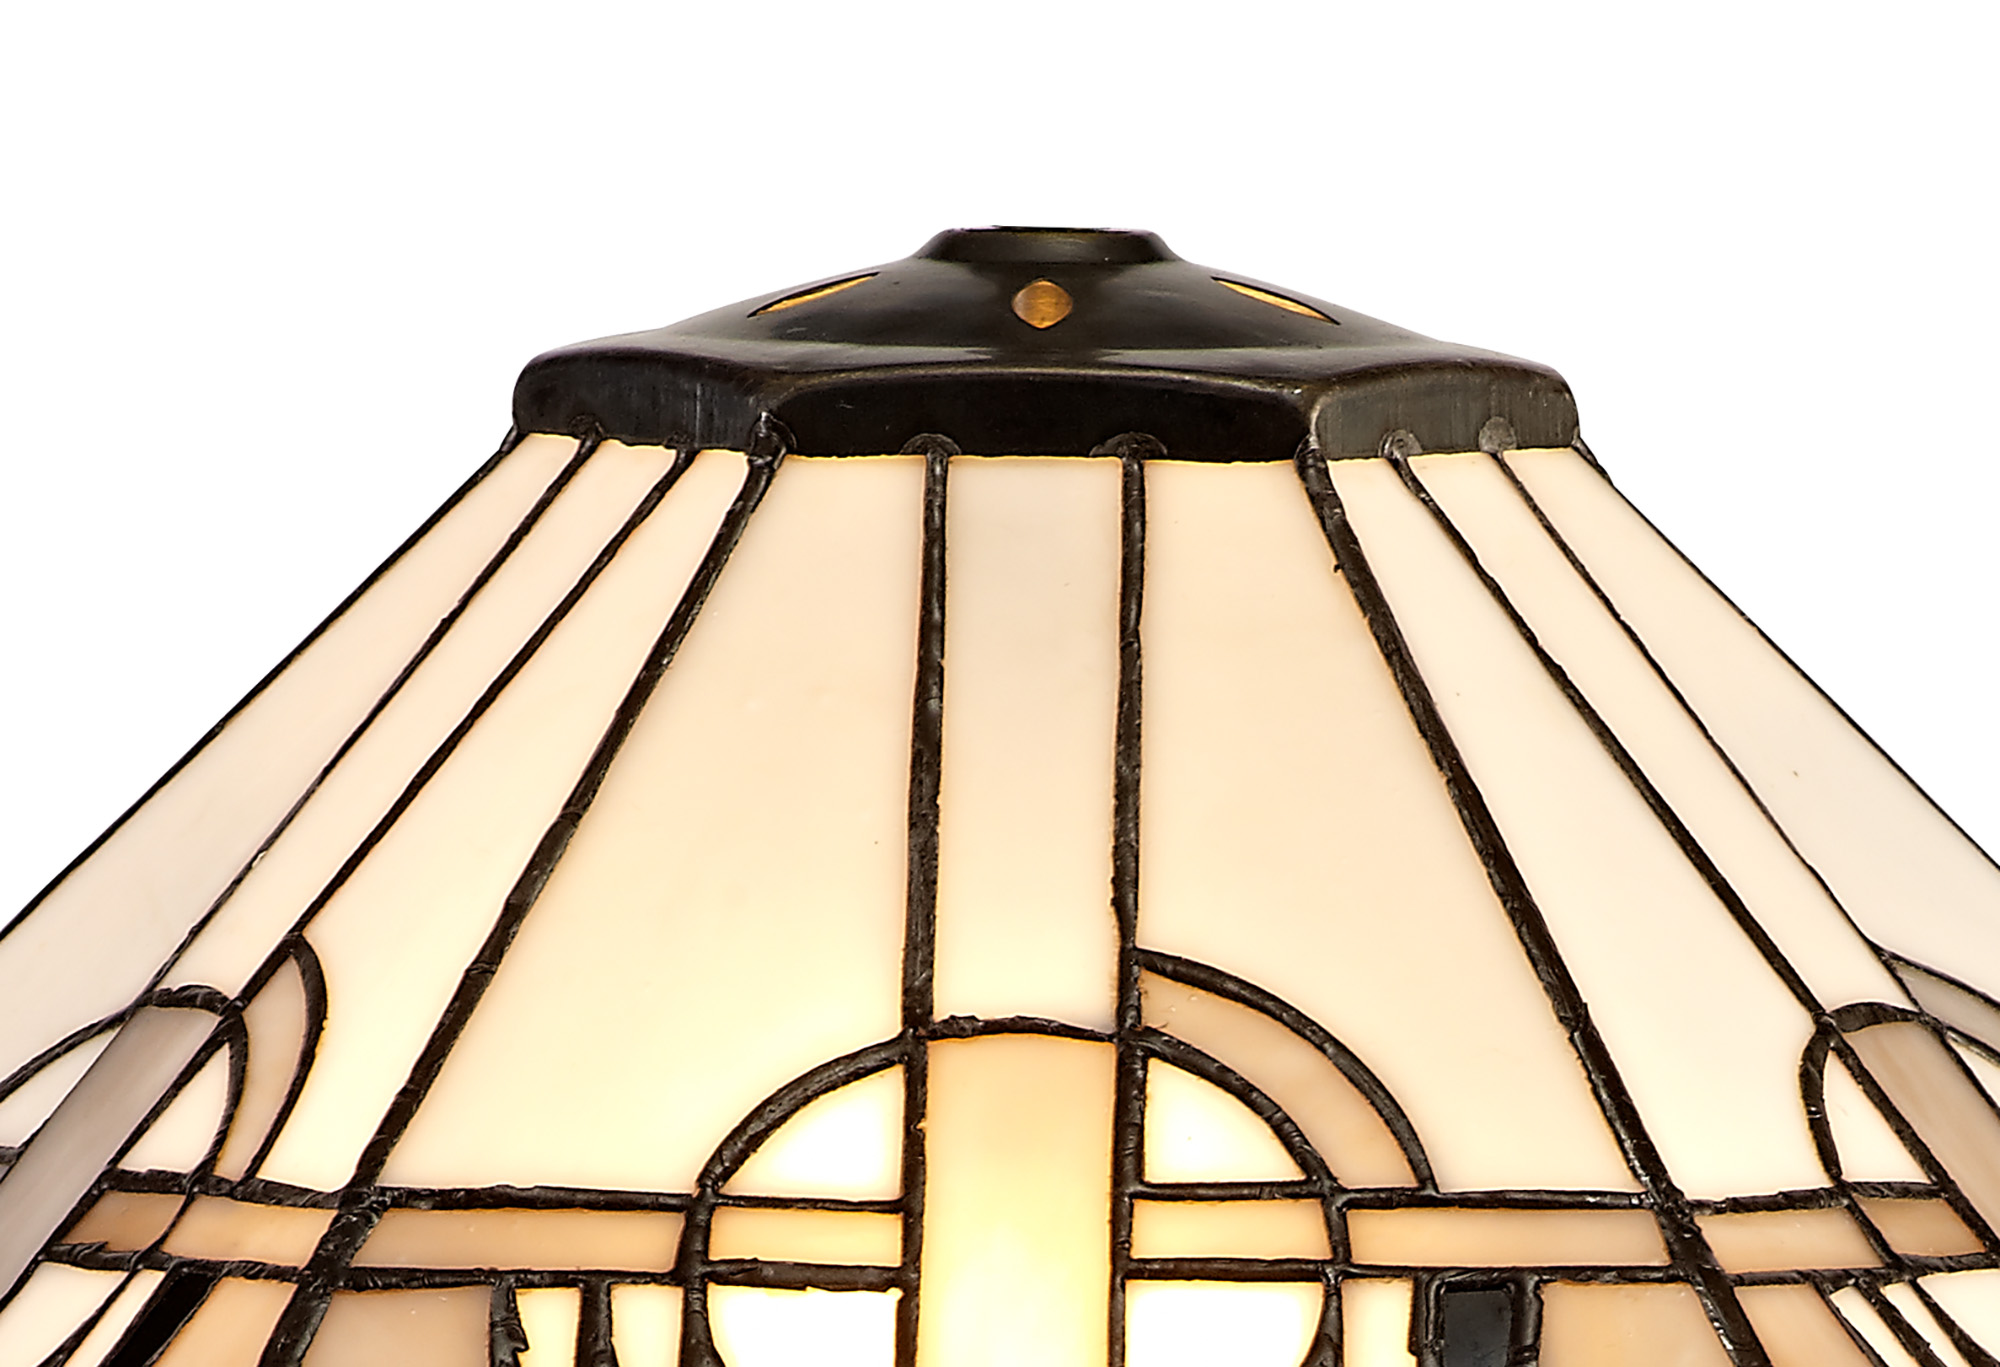 2 Light Octagonal Floor Lamp E27 With 40cm Tiffany Shade, White/Grey/Black/Clear Crystal/Aged Antique Brass